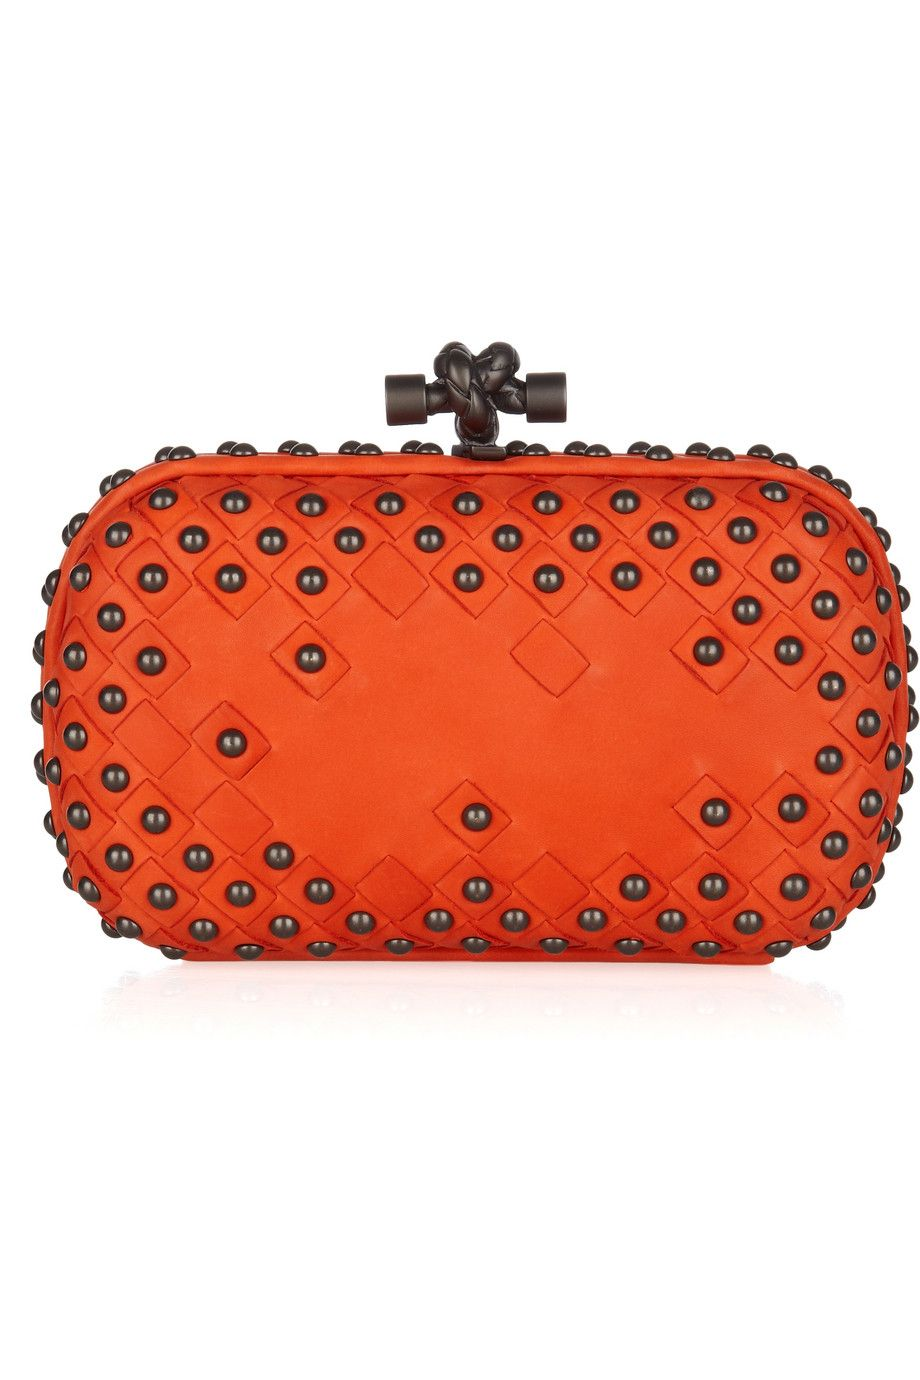 78730b8209 Bottega Veneta studded clutch... Studs + Orange   me sold (minus the  1780  price tag